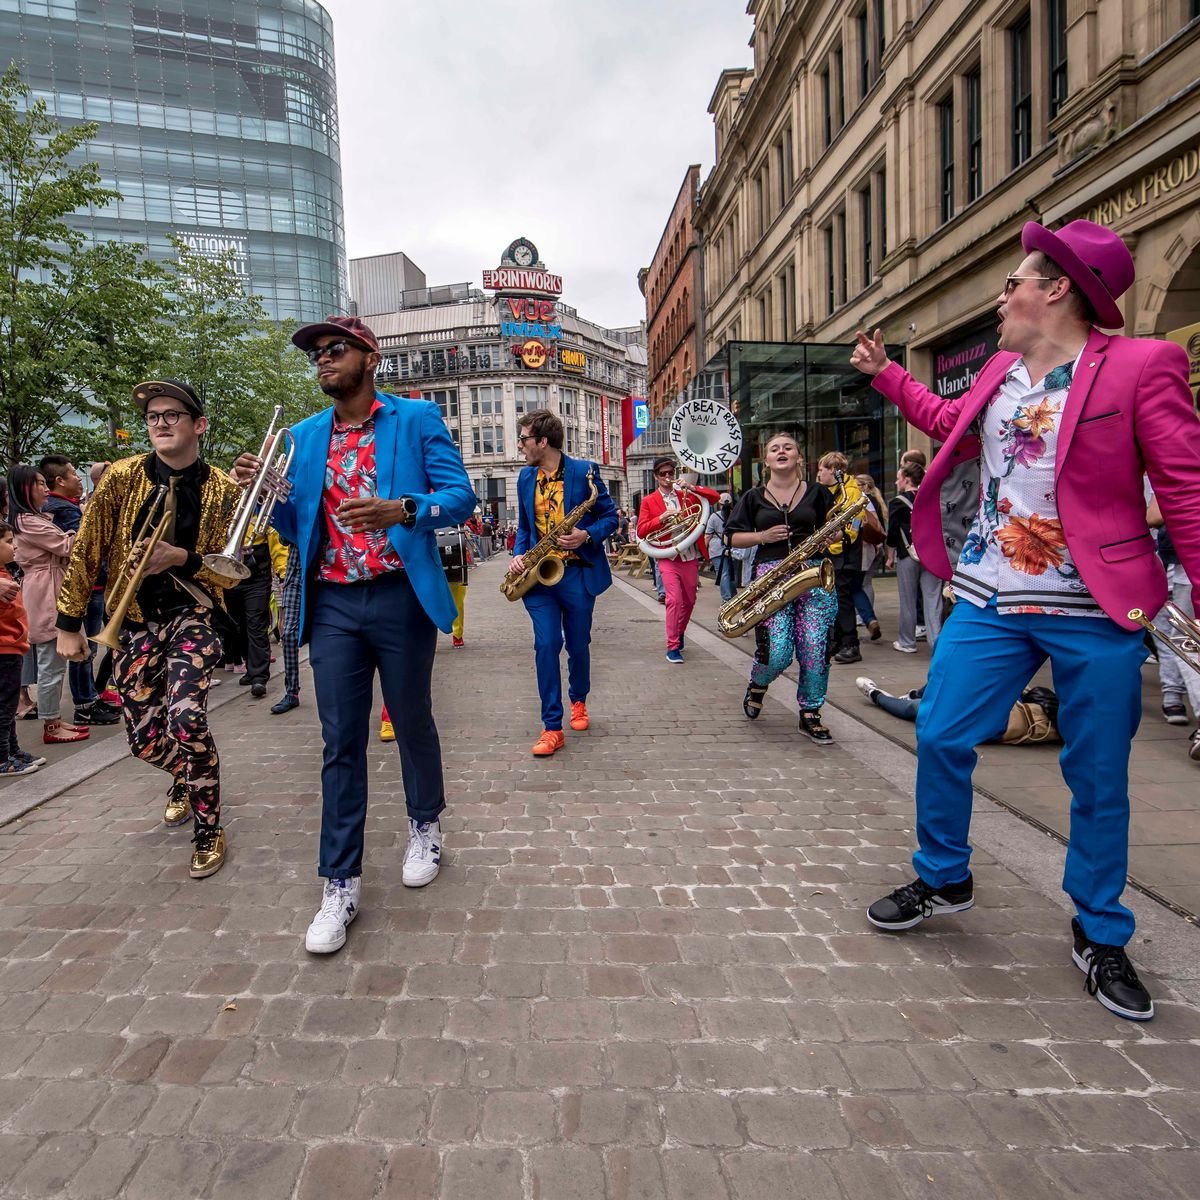 A free 'Thank You Manchester' festival is happening in the city centre this weekend, The Manc